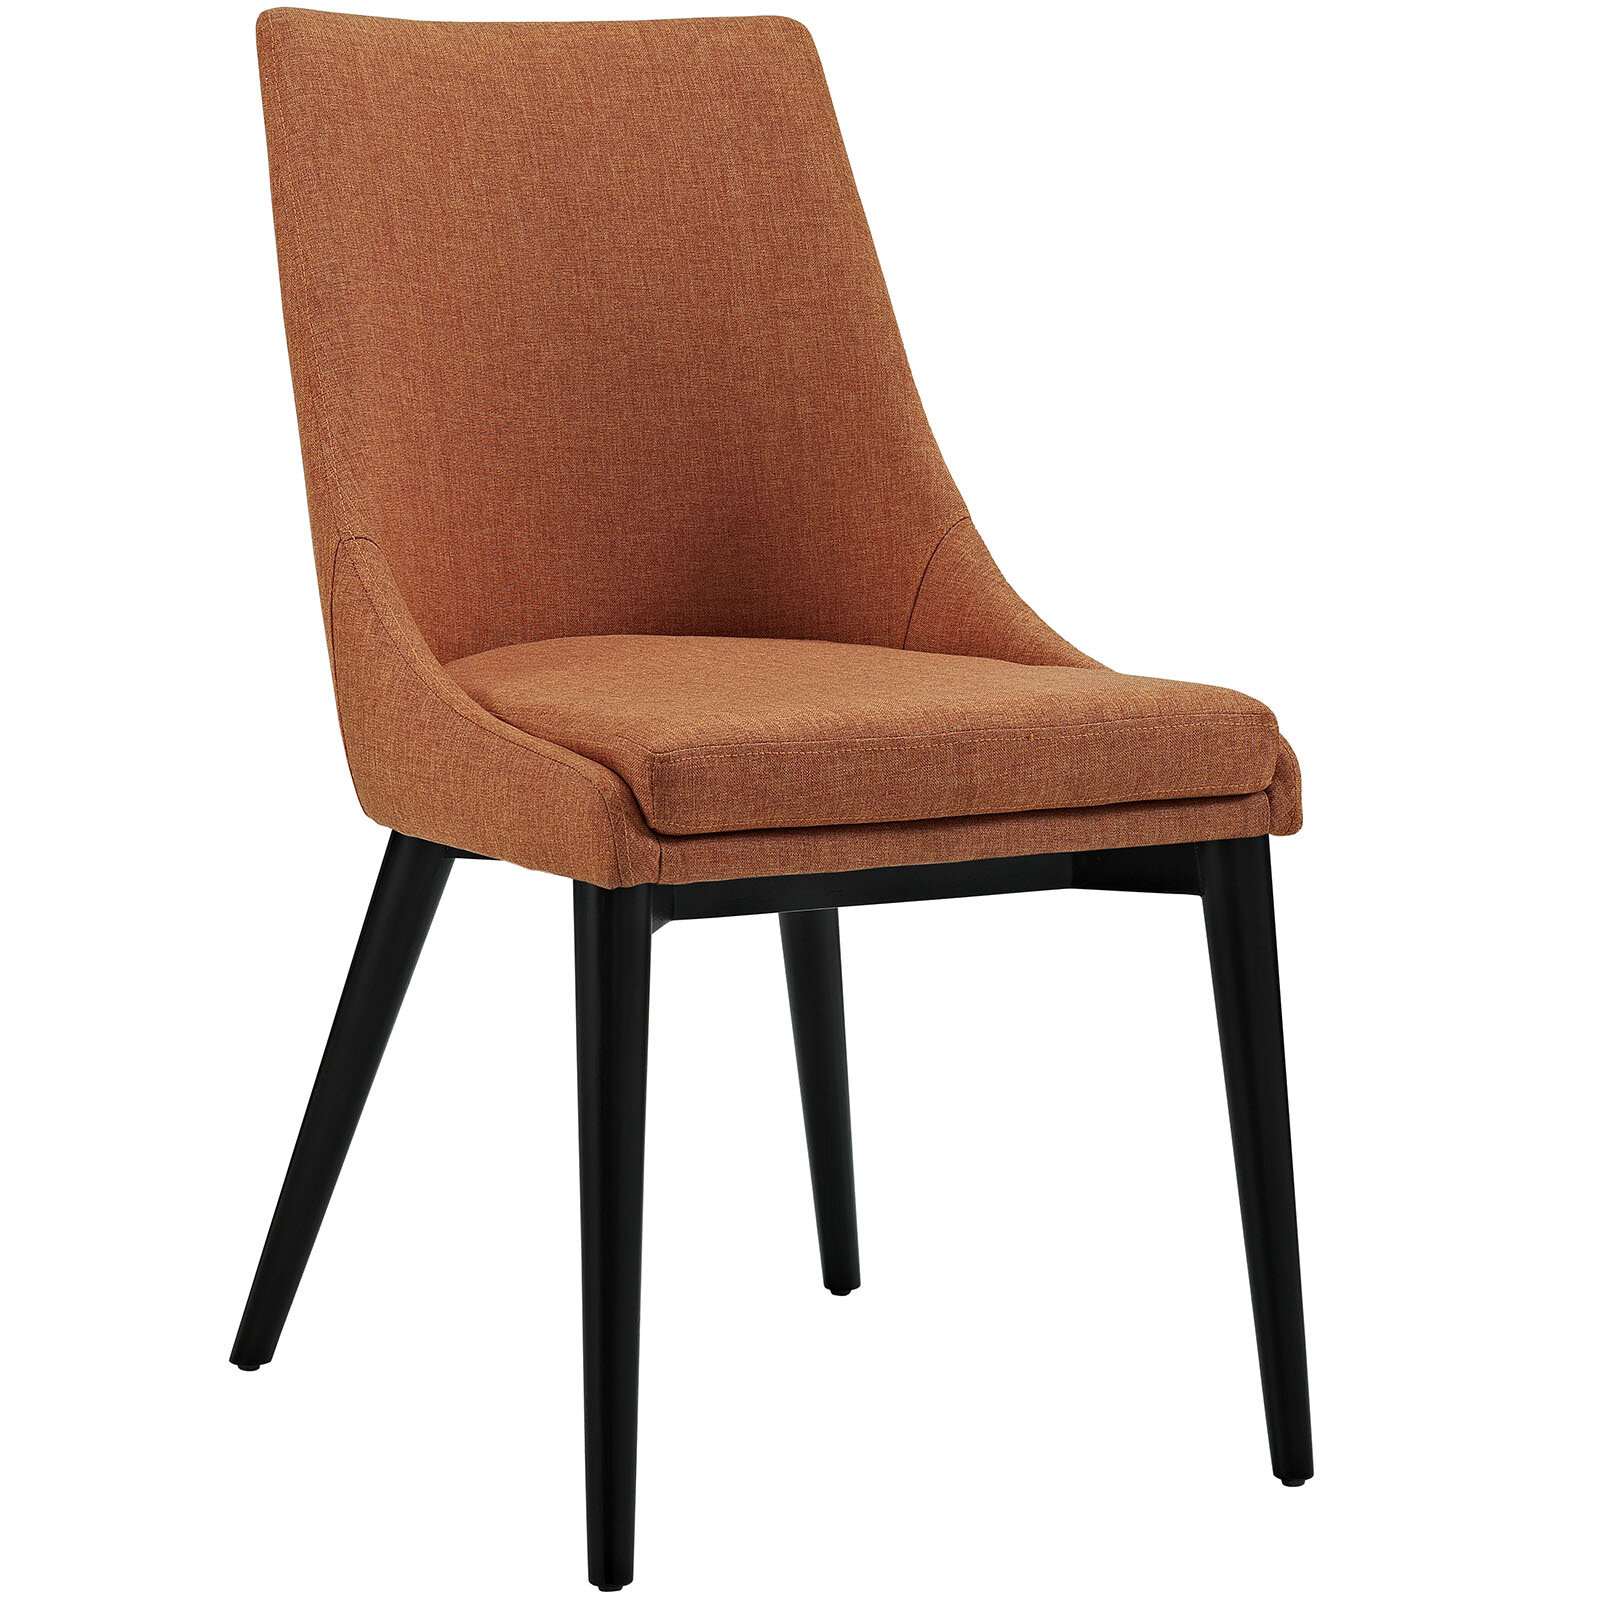 Featured Image of Carlton Wood Leg Upholstered Dining Chairs